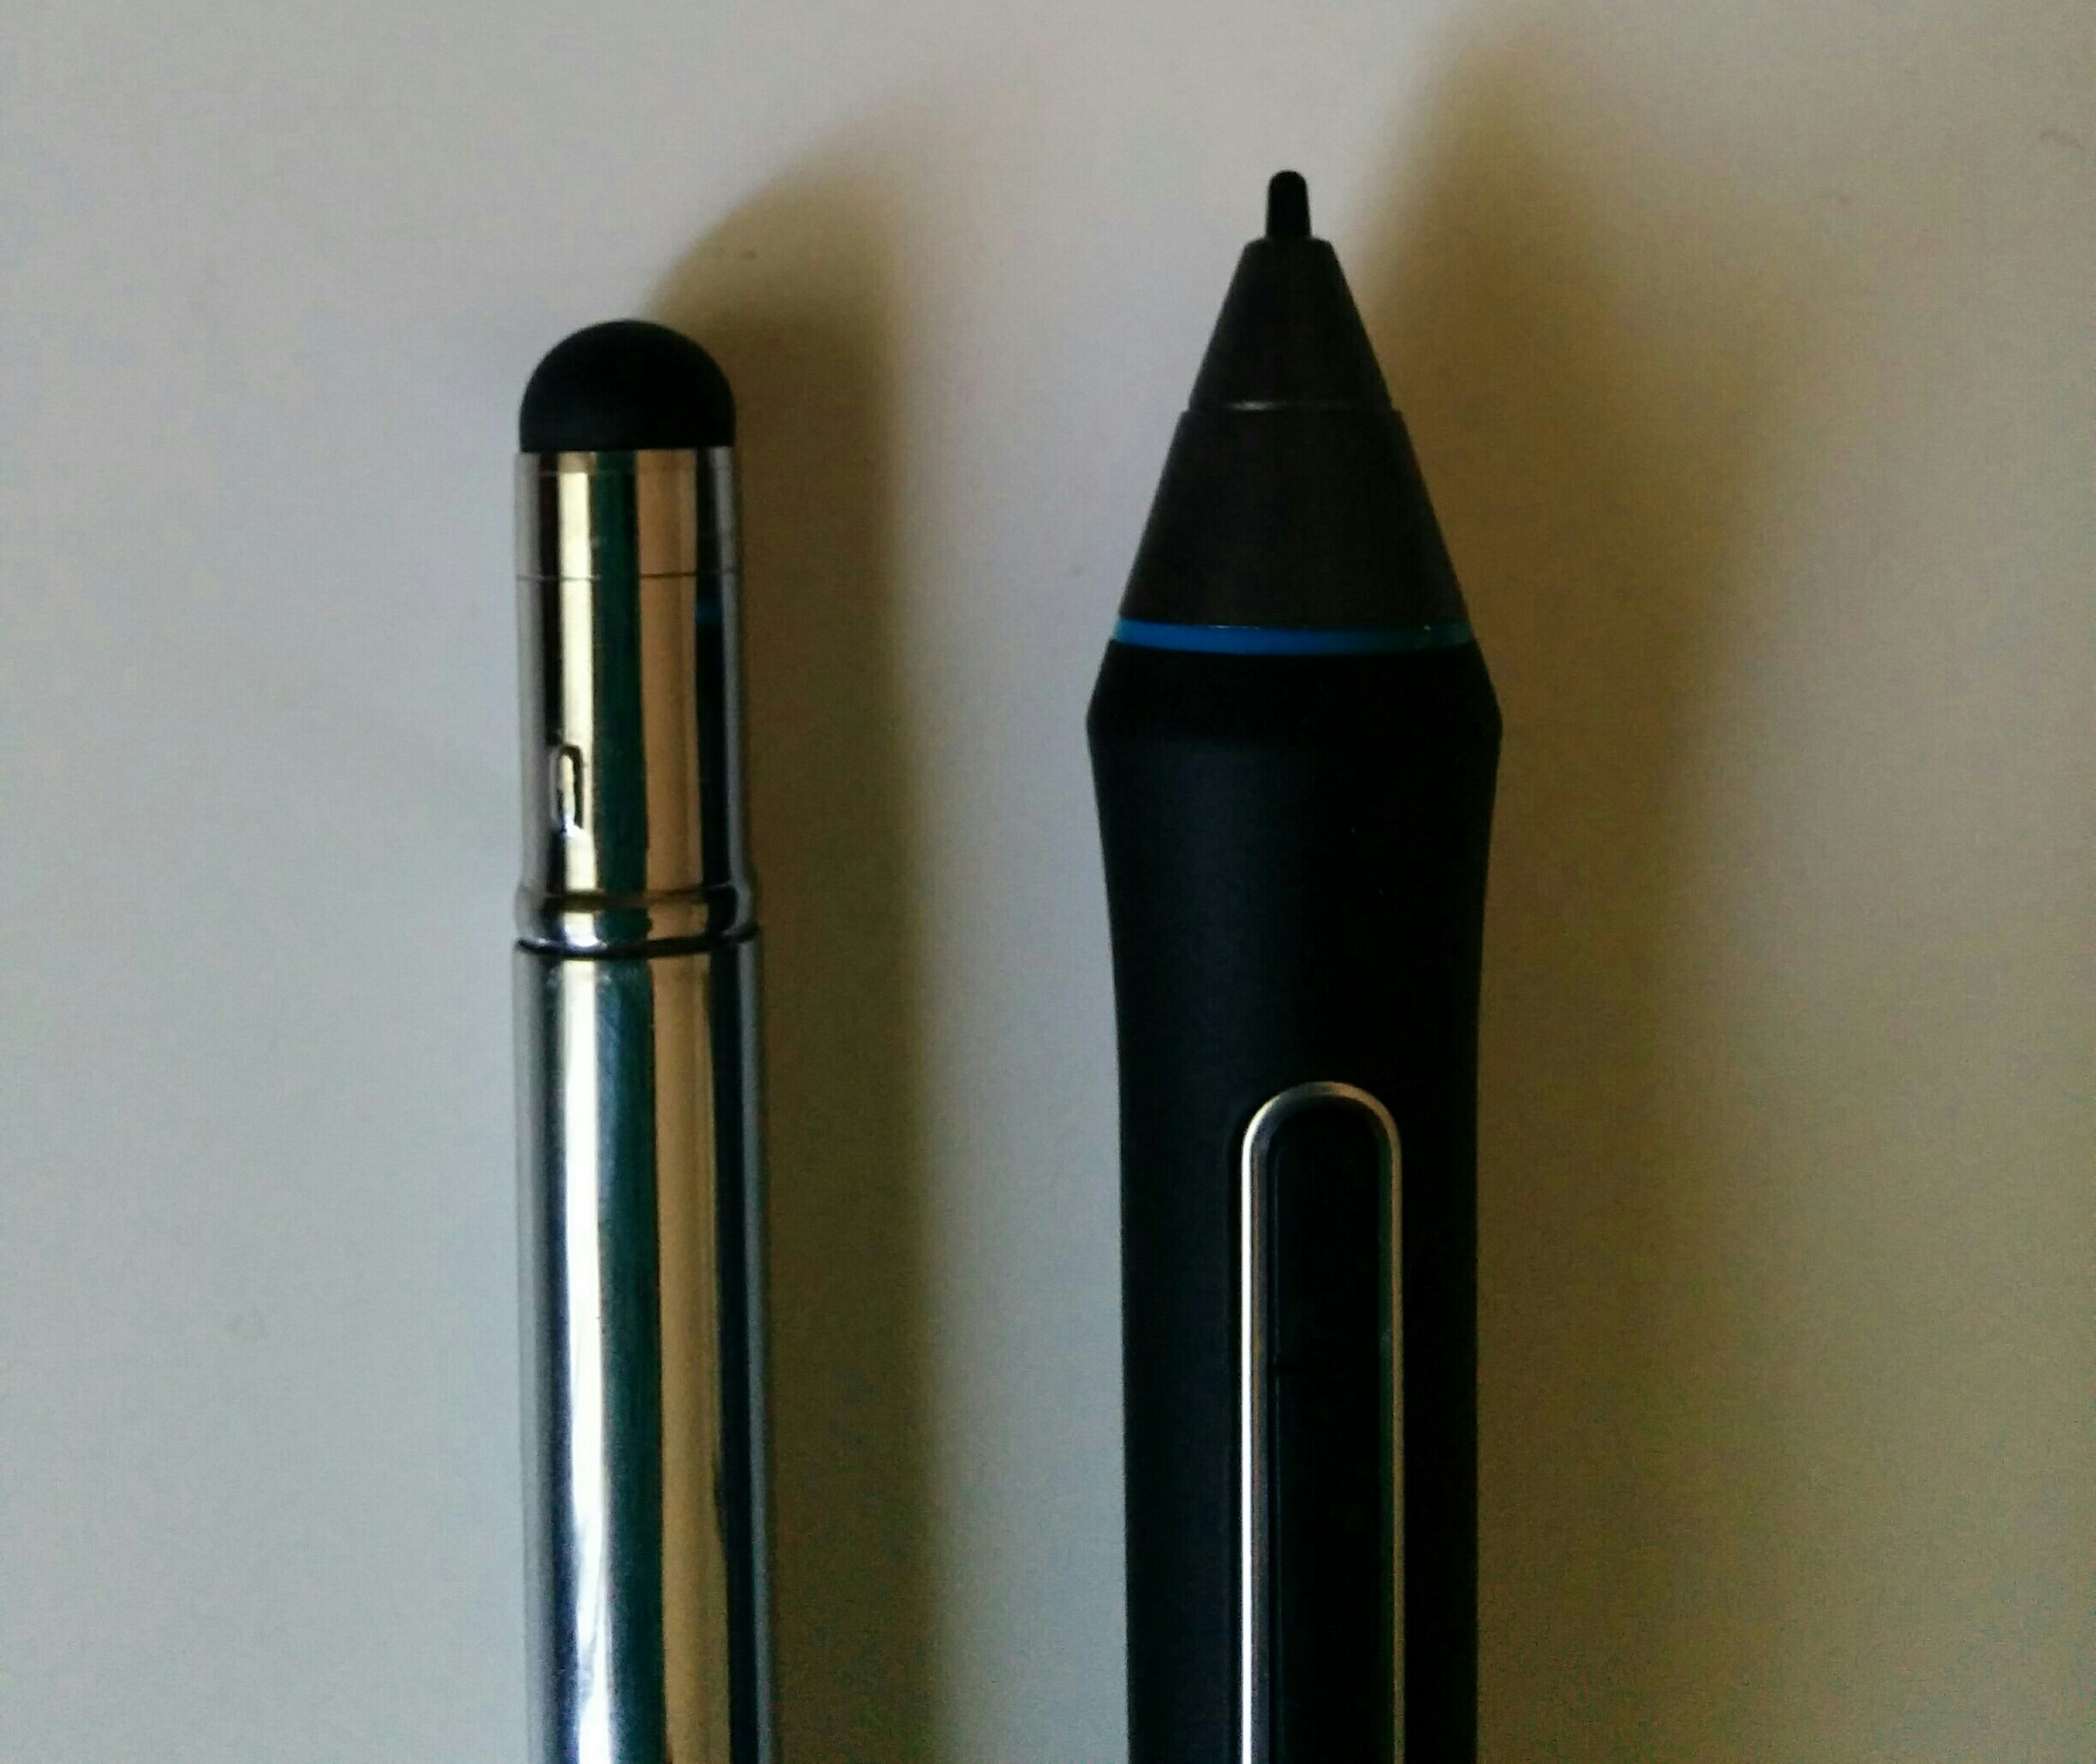 Sensu tip size compared to a Cintiq stylus